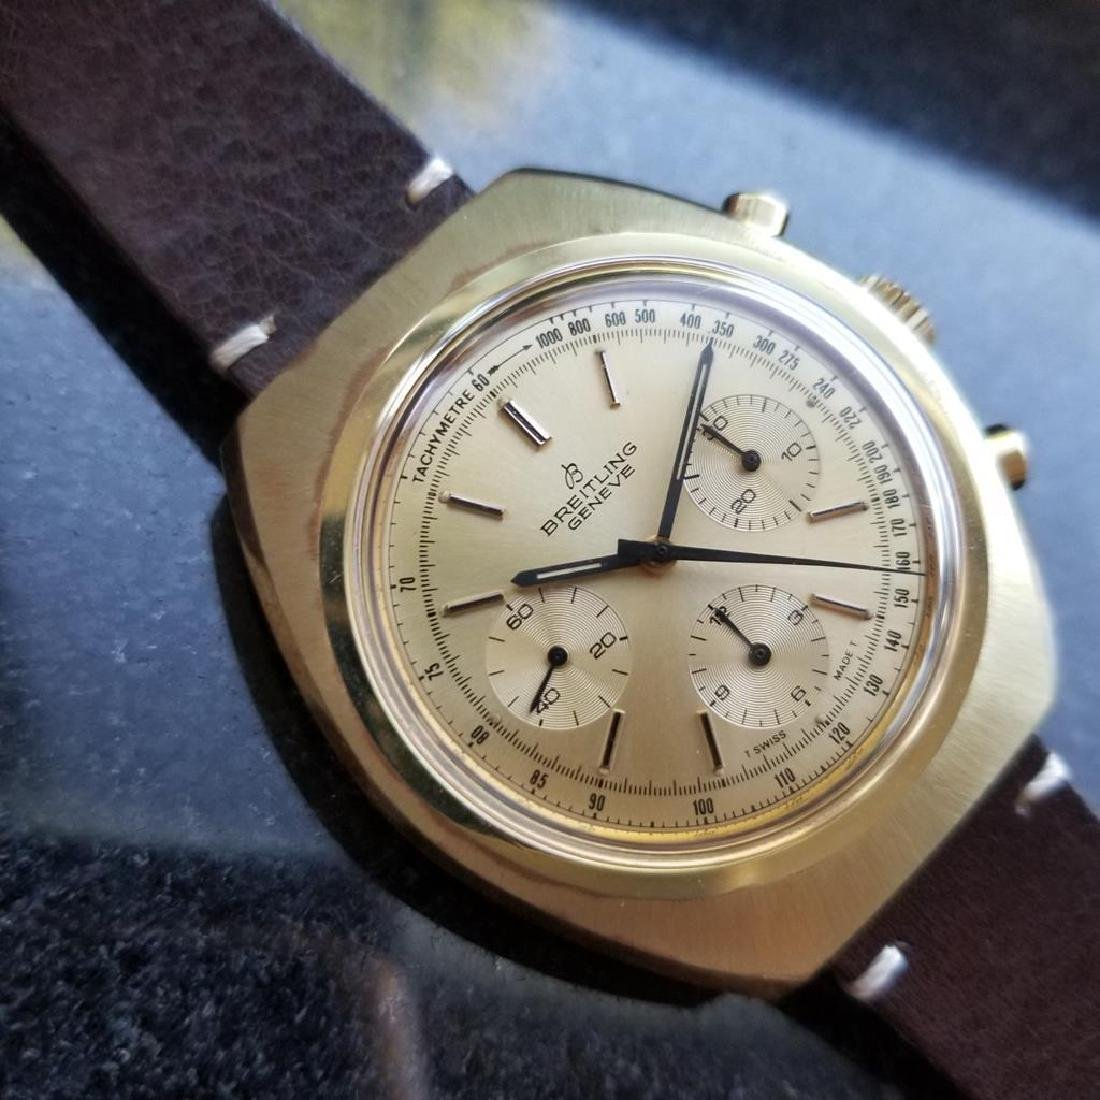 BREITLING 1451 Tricompax Manual Wind Chronograph 42mm - 2